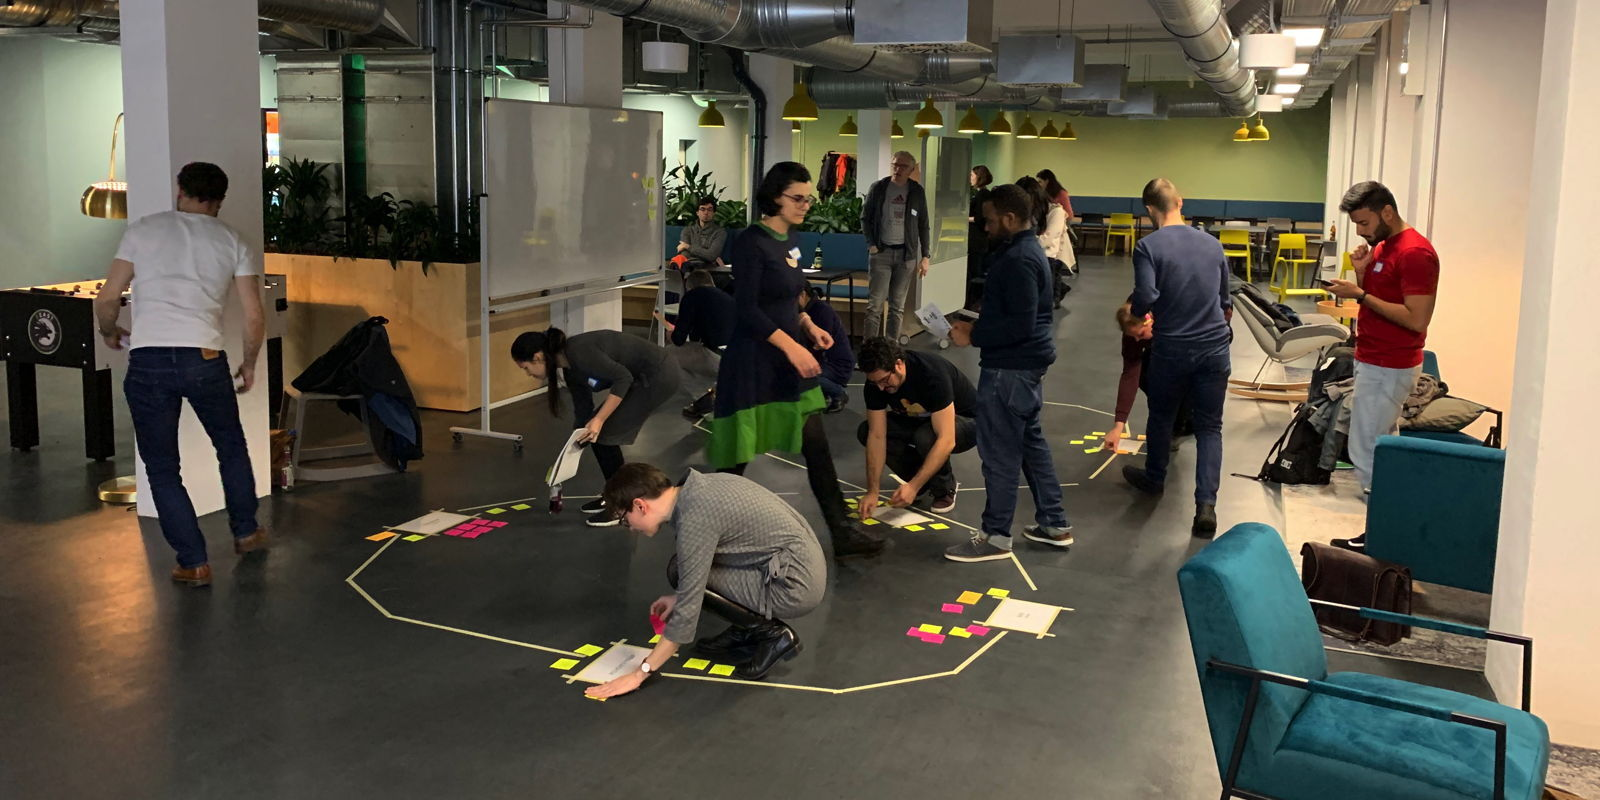 Ecocycle Planning to Identify Scrum Master Opportunities at Smava, Berlin 11/2019